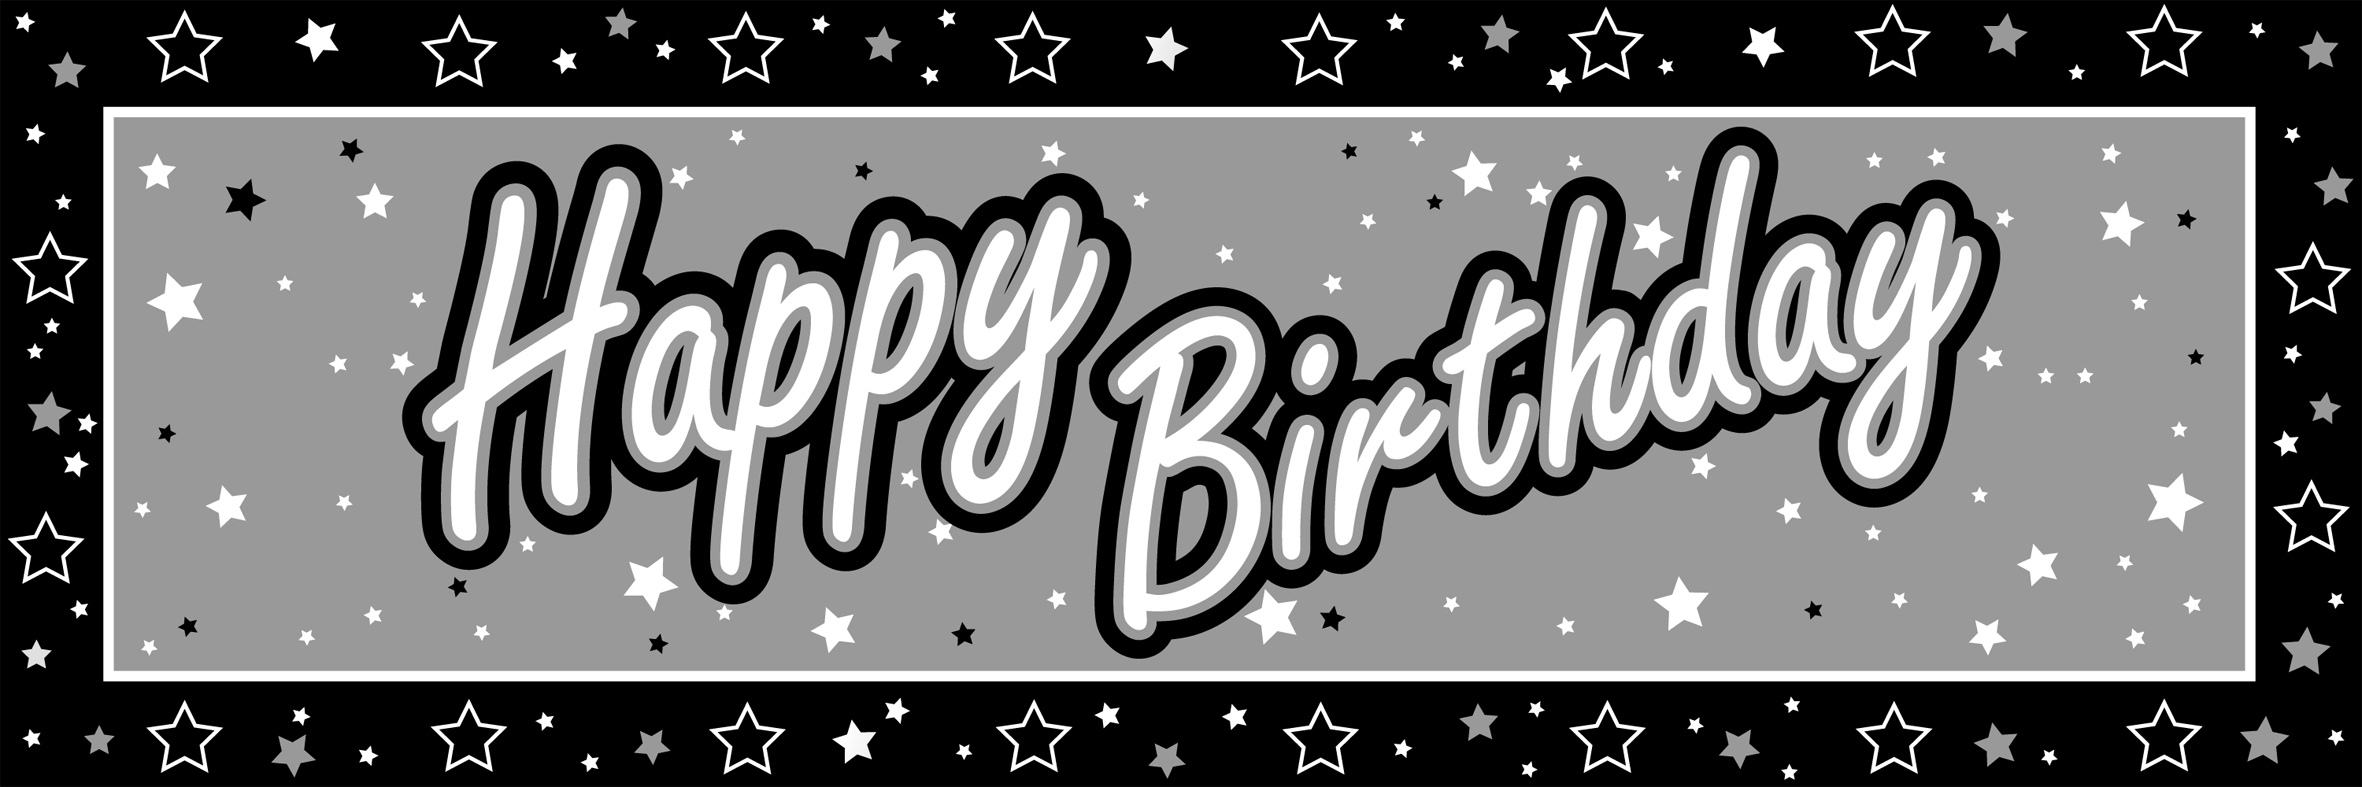 Birthday Black And White Clipart - Clipart Kid